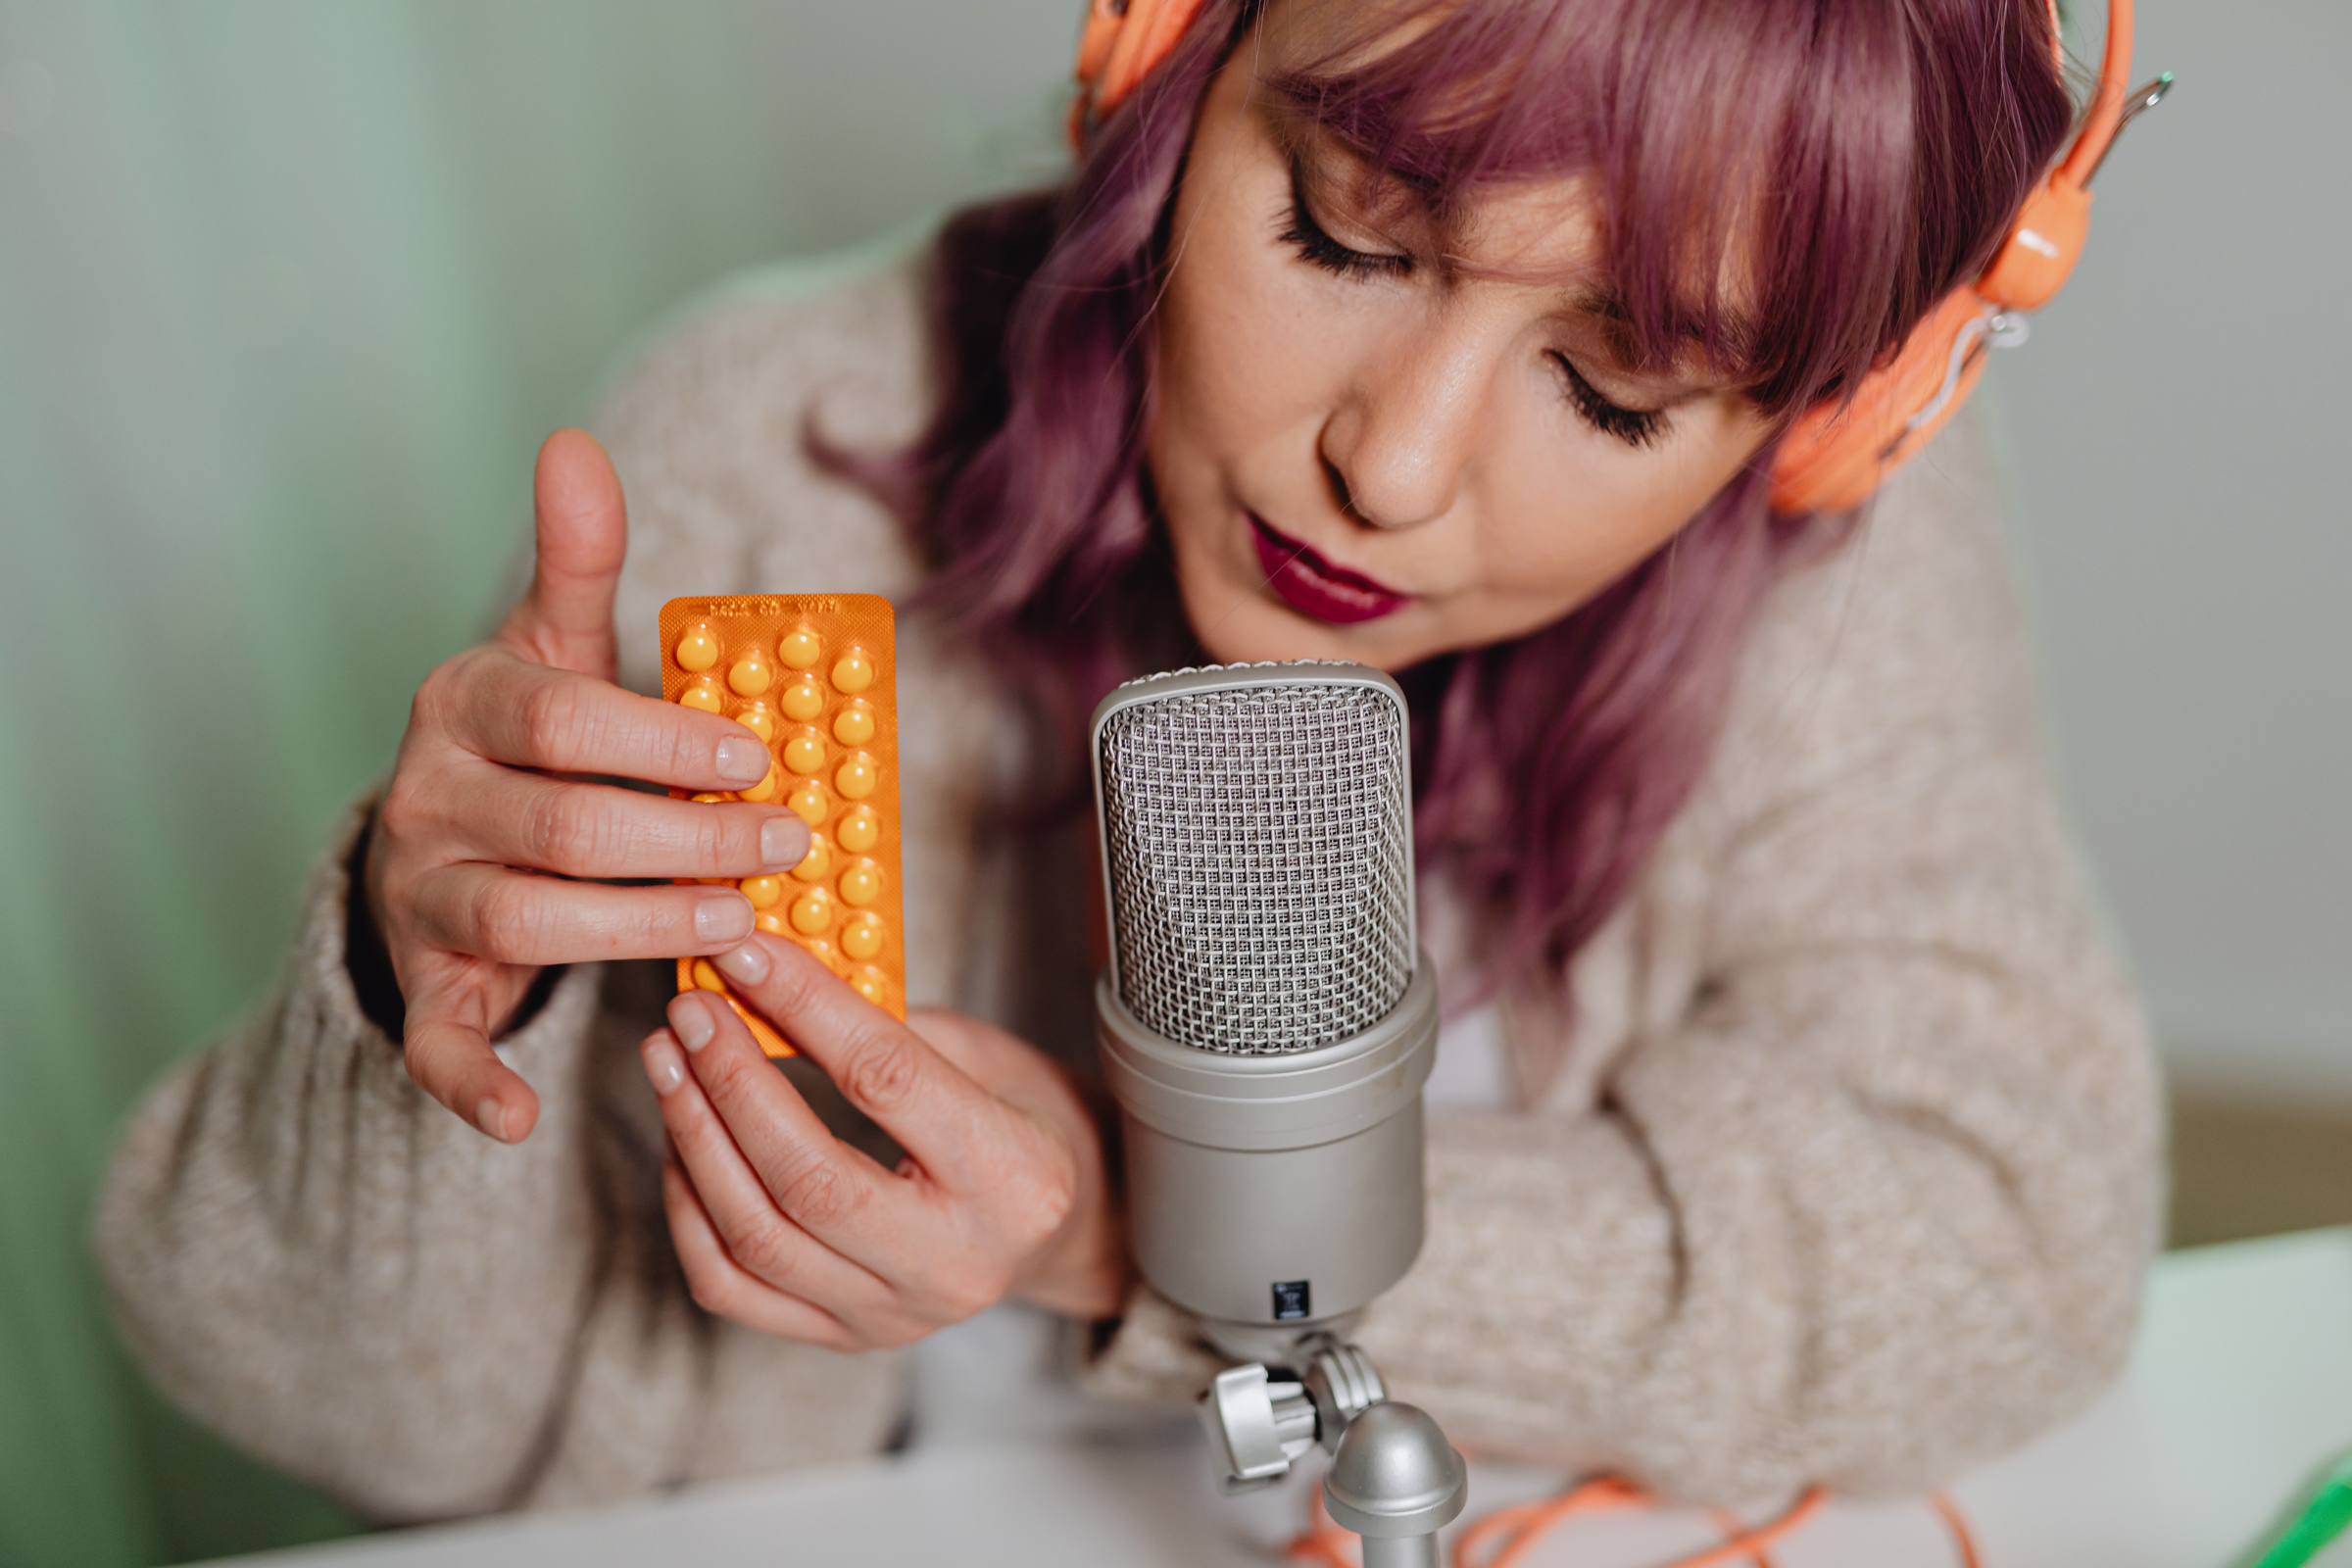 A white woman with purple hair holds an orange wrapper with bumps on it in front of a microphone to make ASMR sounds.